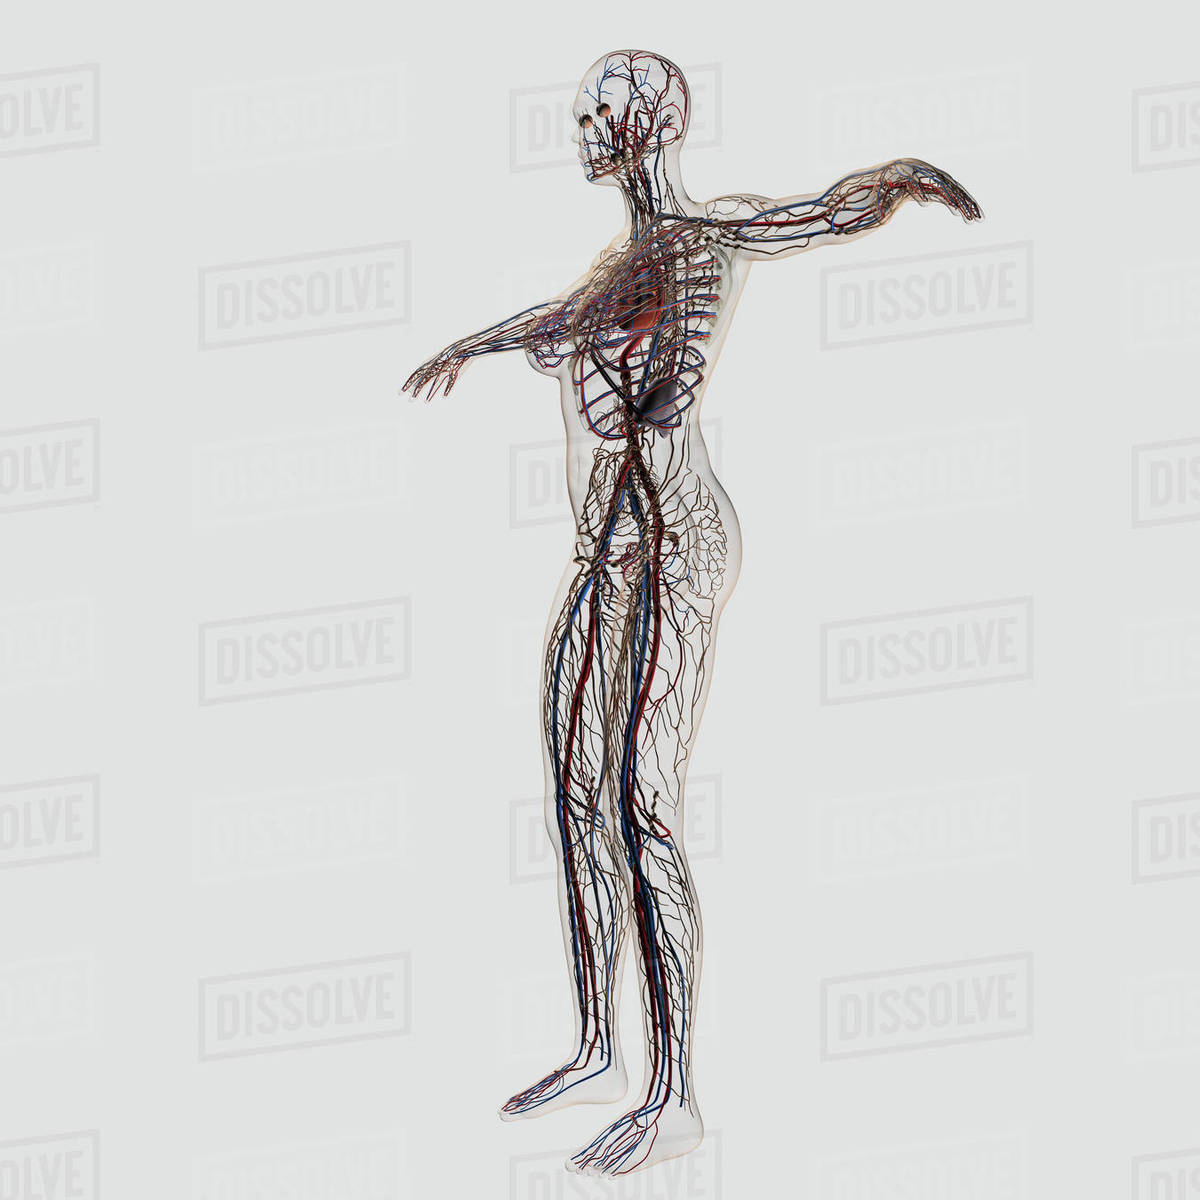 Medical Illustration Of Female Arteries Veins And Lymphatic System